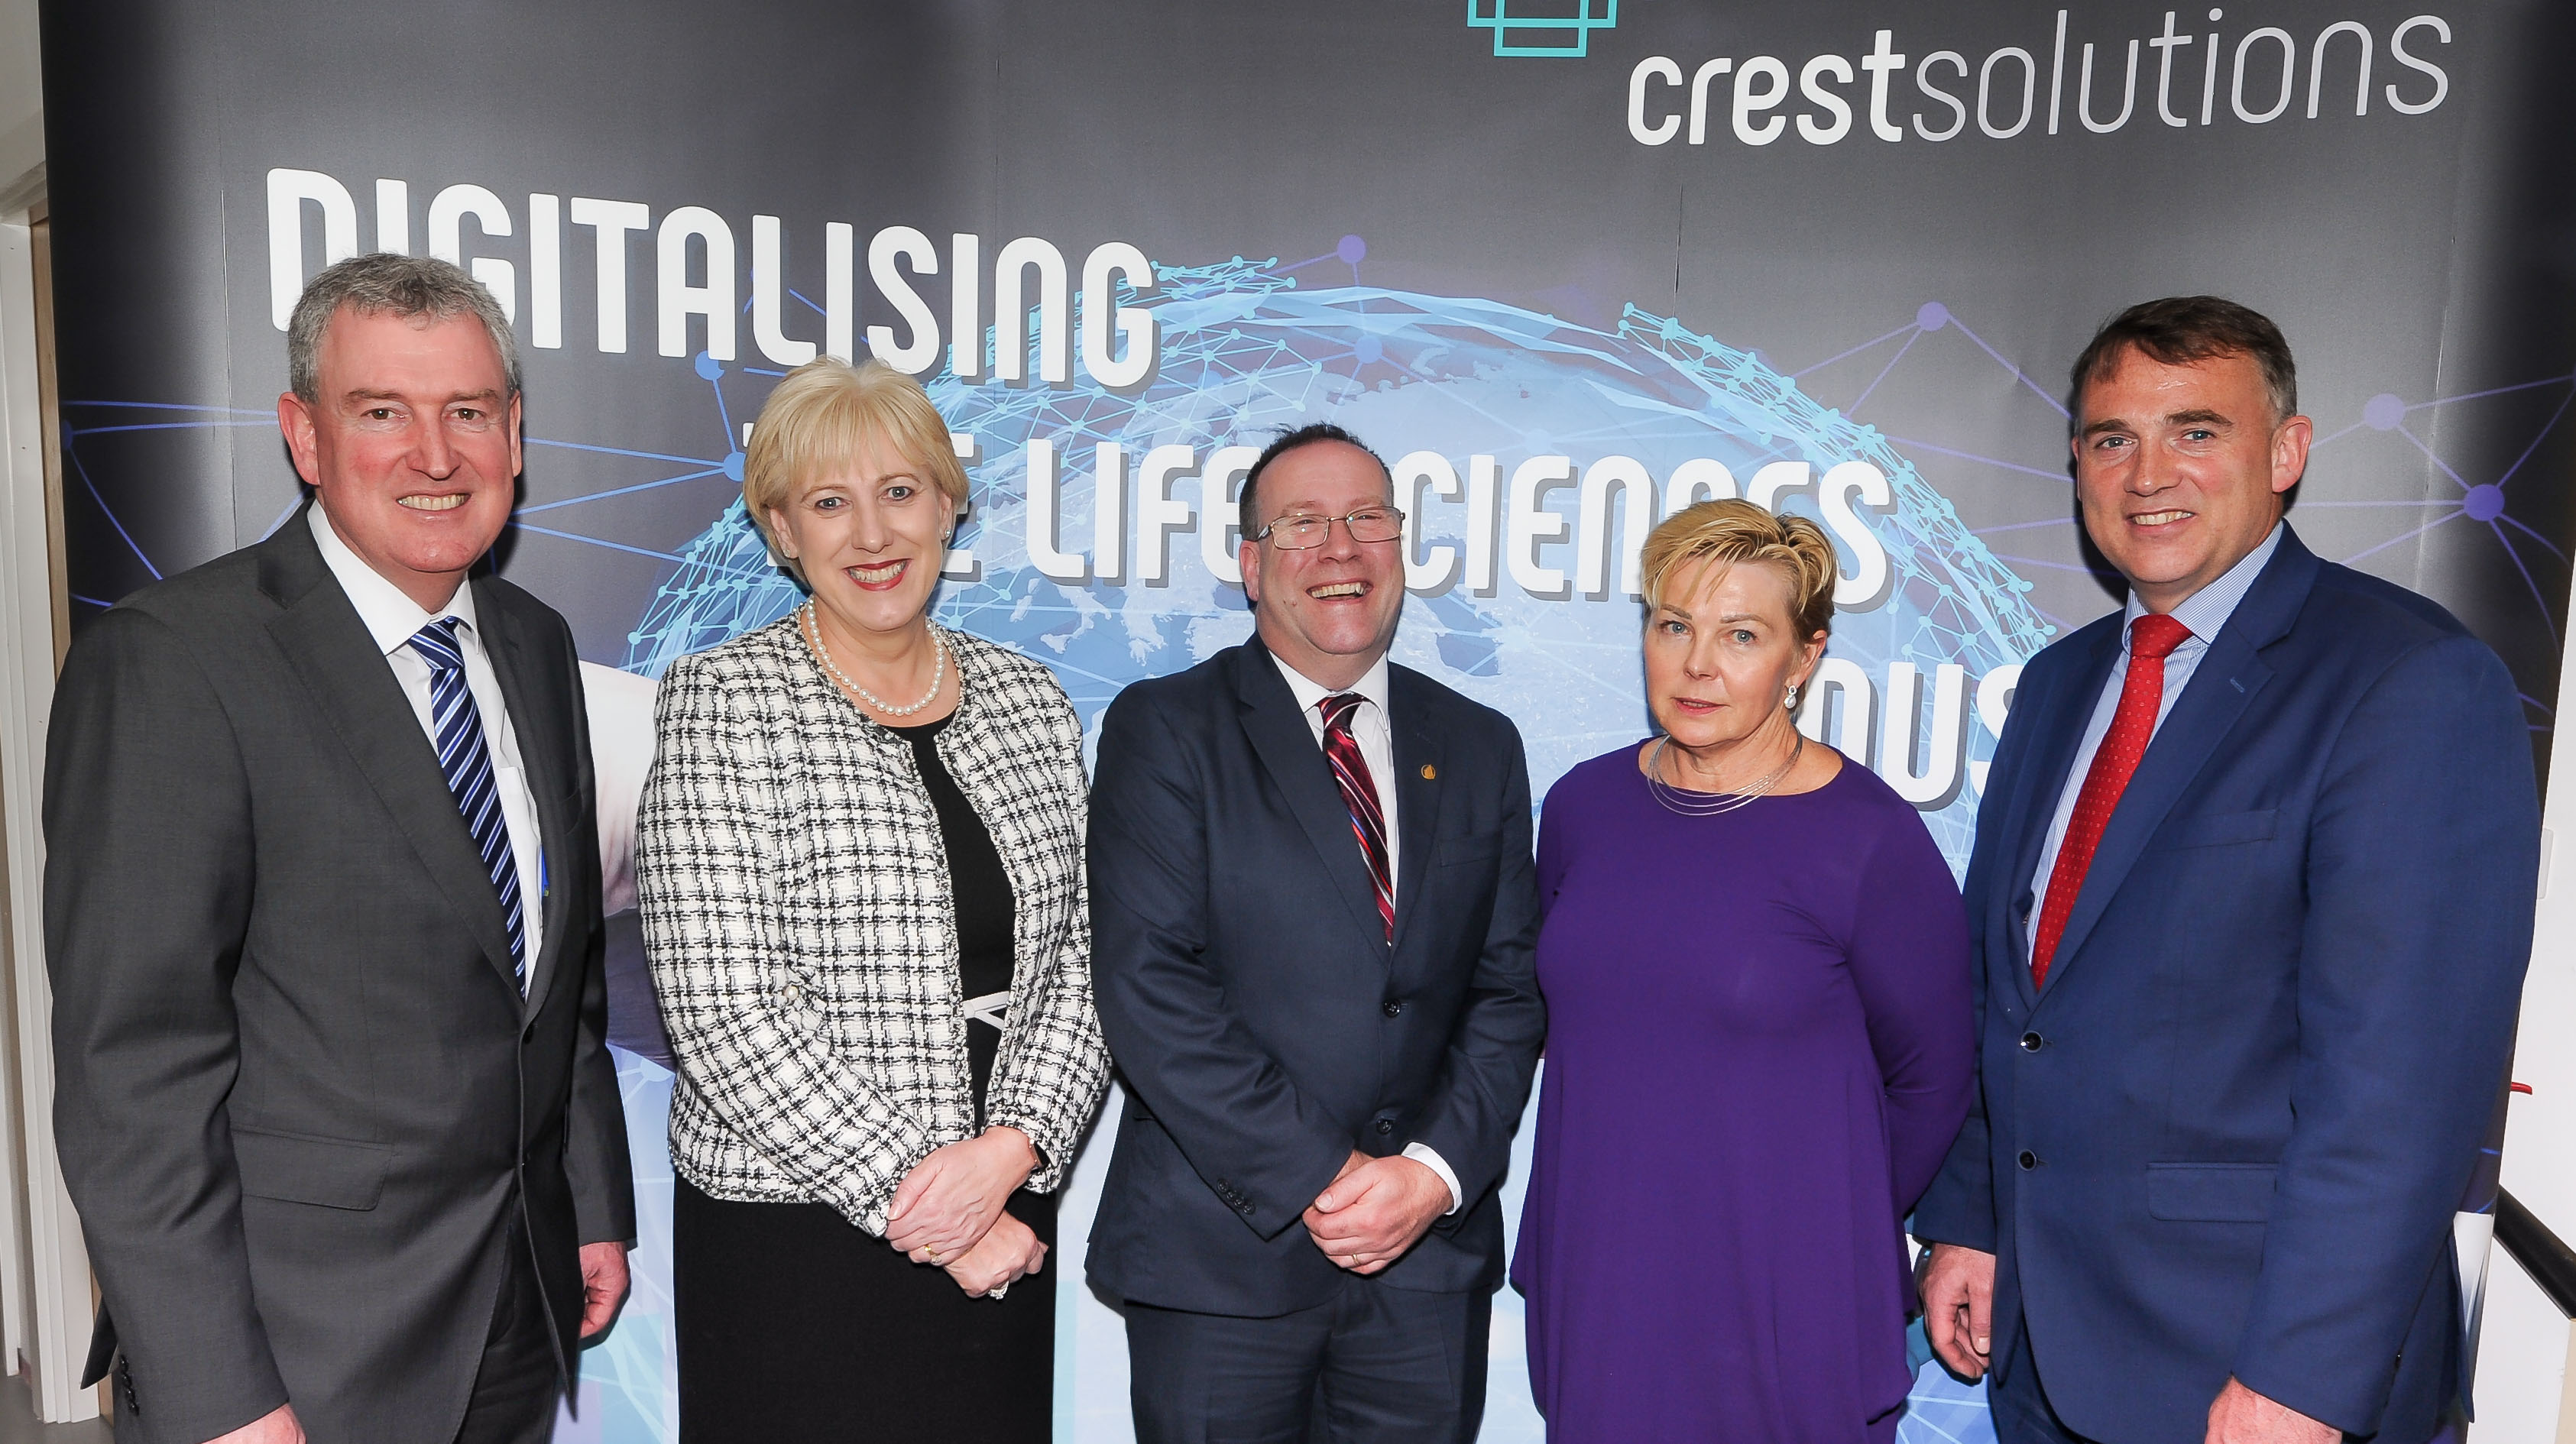 Crest Solutions announces 80 new jobs with further growth forecast